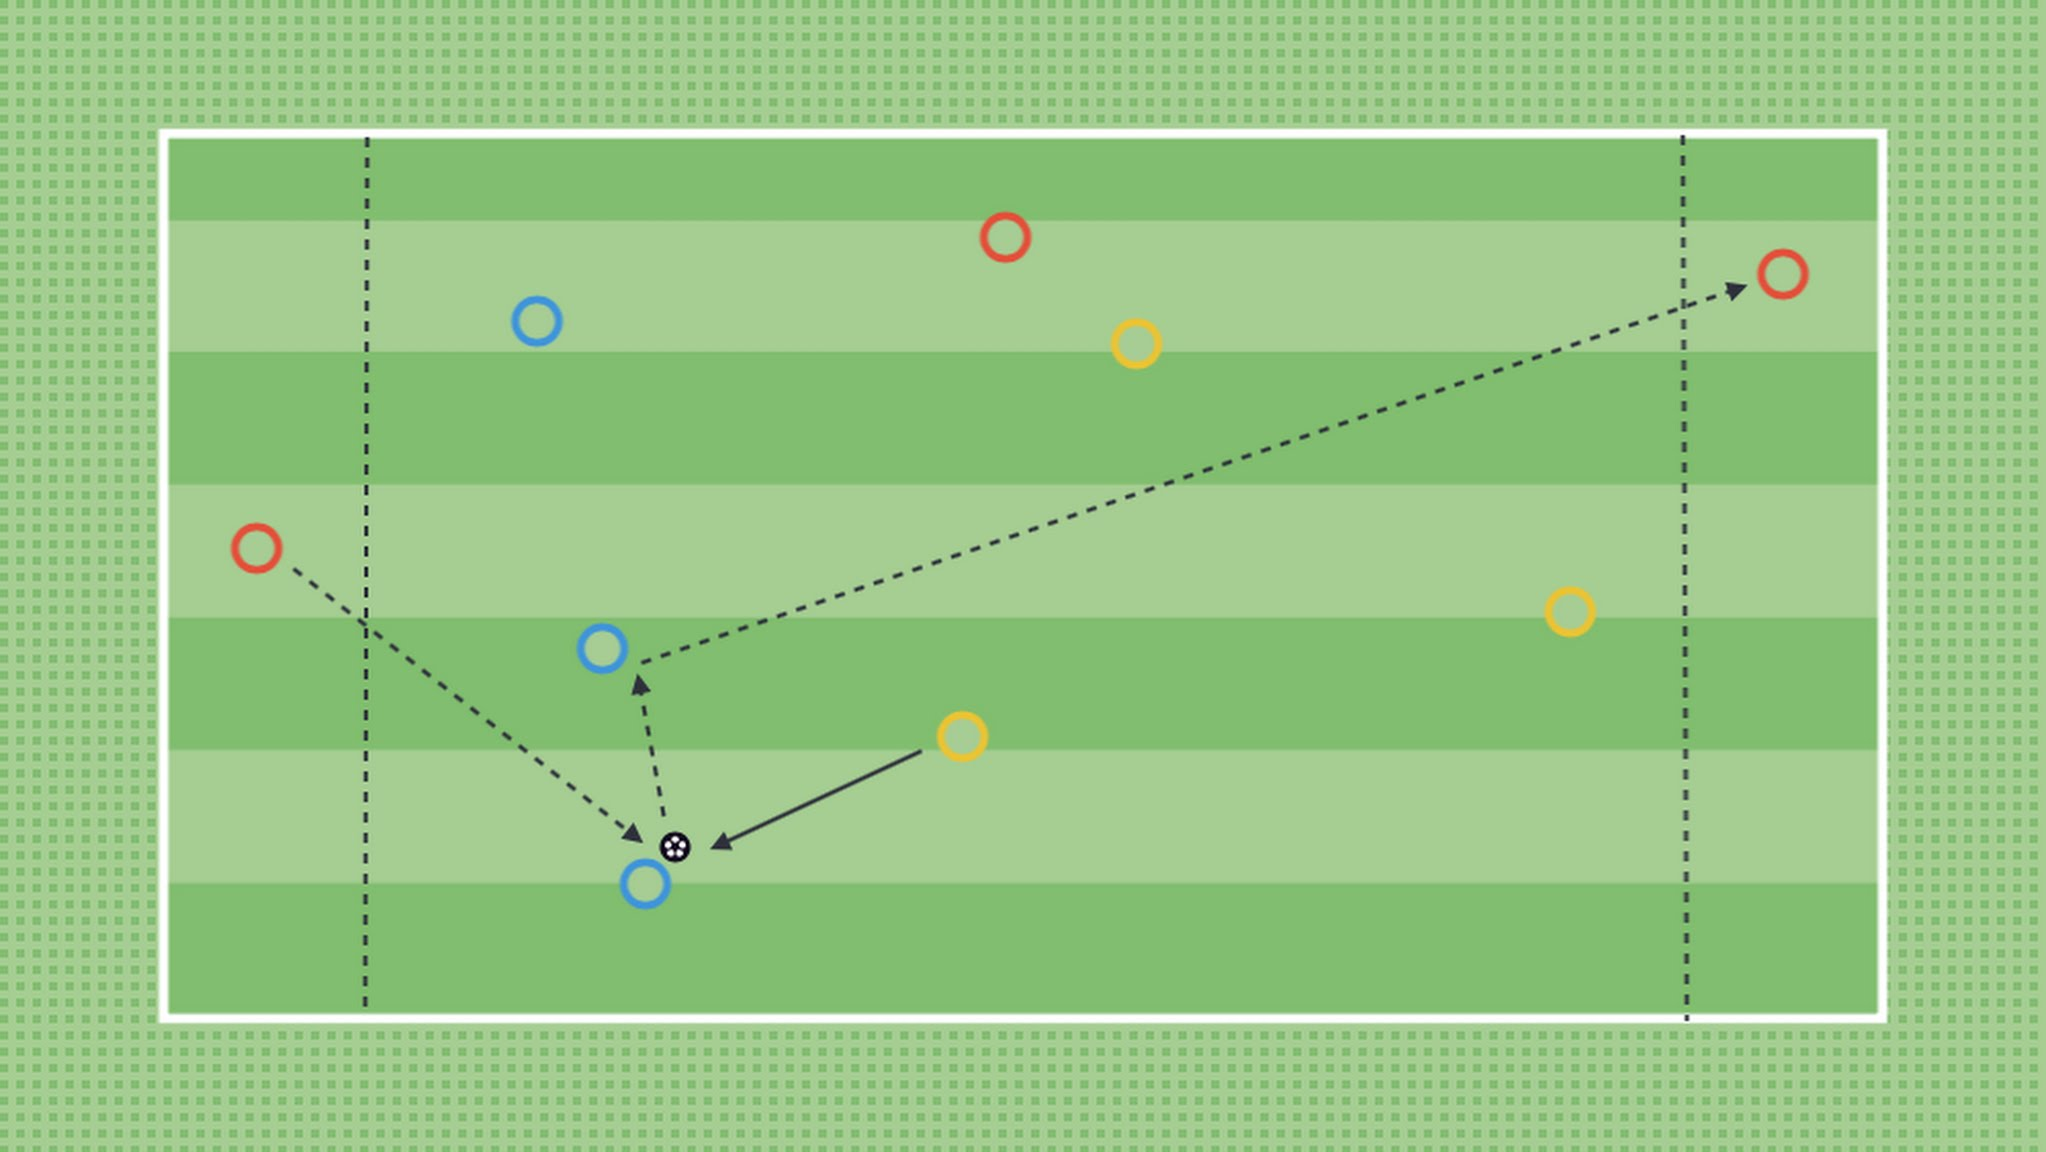 Repeating a session, especially one that requires a lot of explaining, allows more playing time as there is less need for instruction. This means less time figuring out the activity, and more time working on the theme of the session.